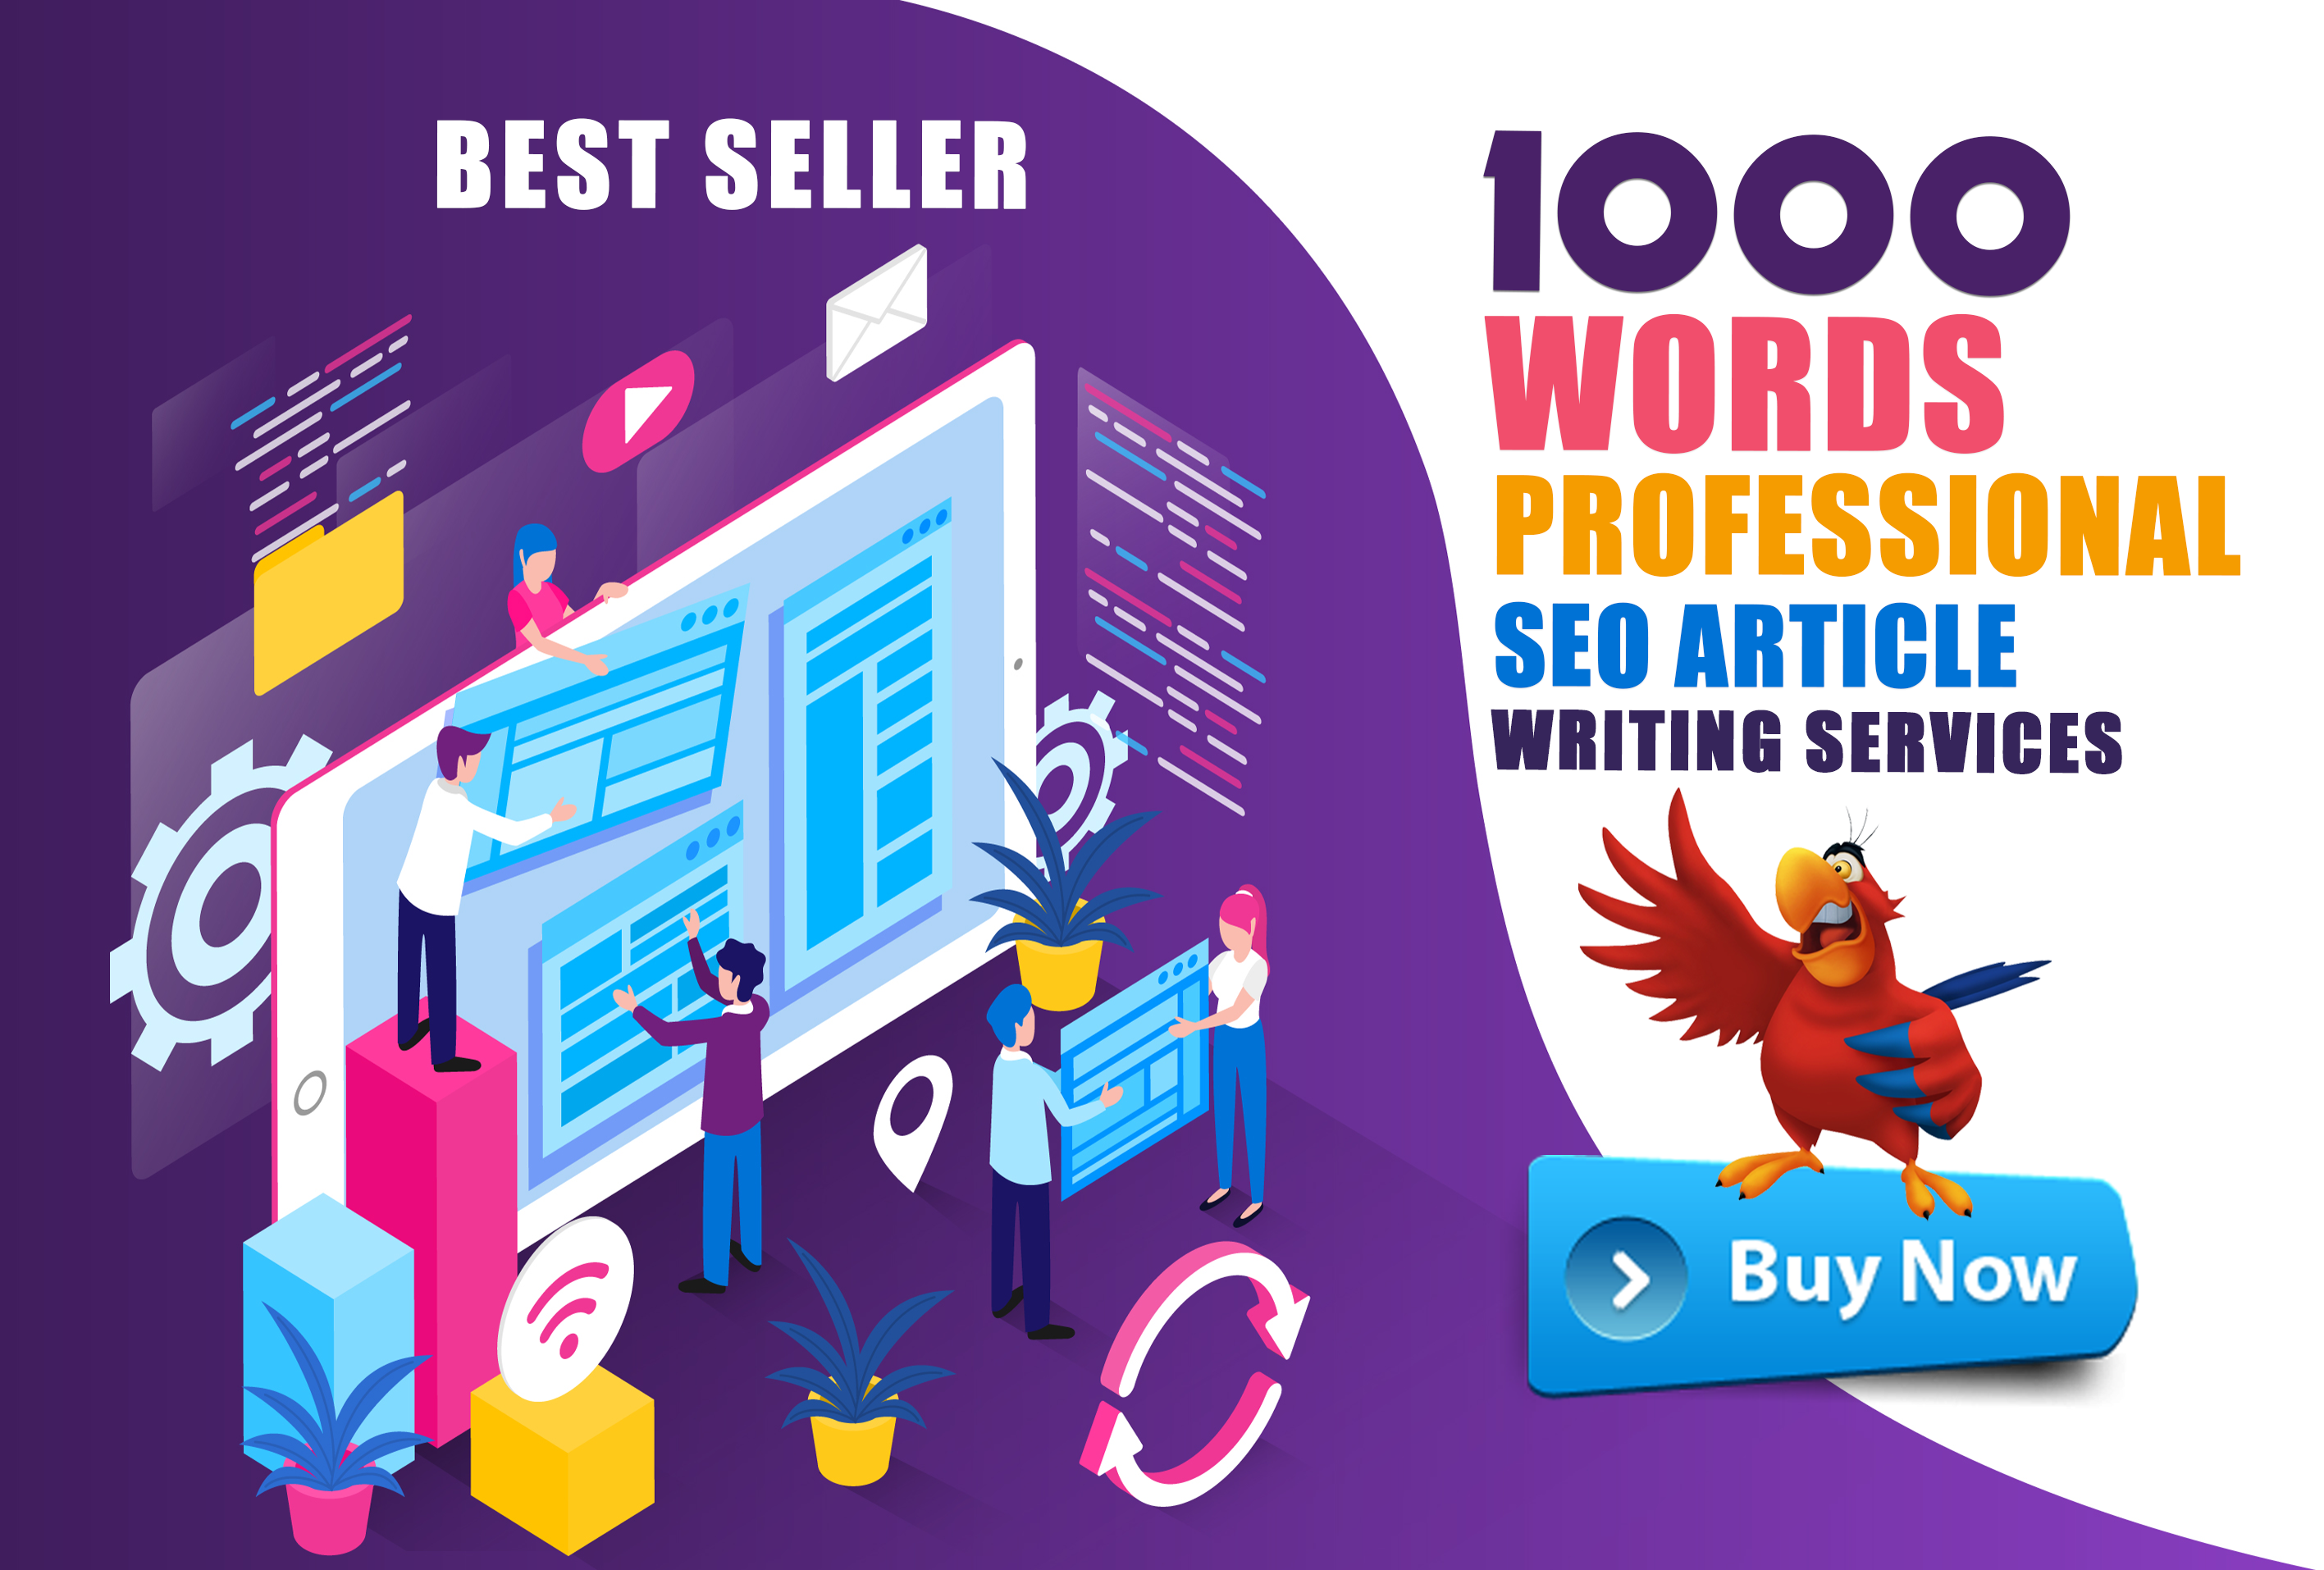 Write Quality 1000 Words Of Attractive SEO Articles